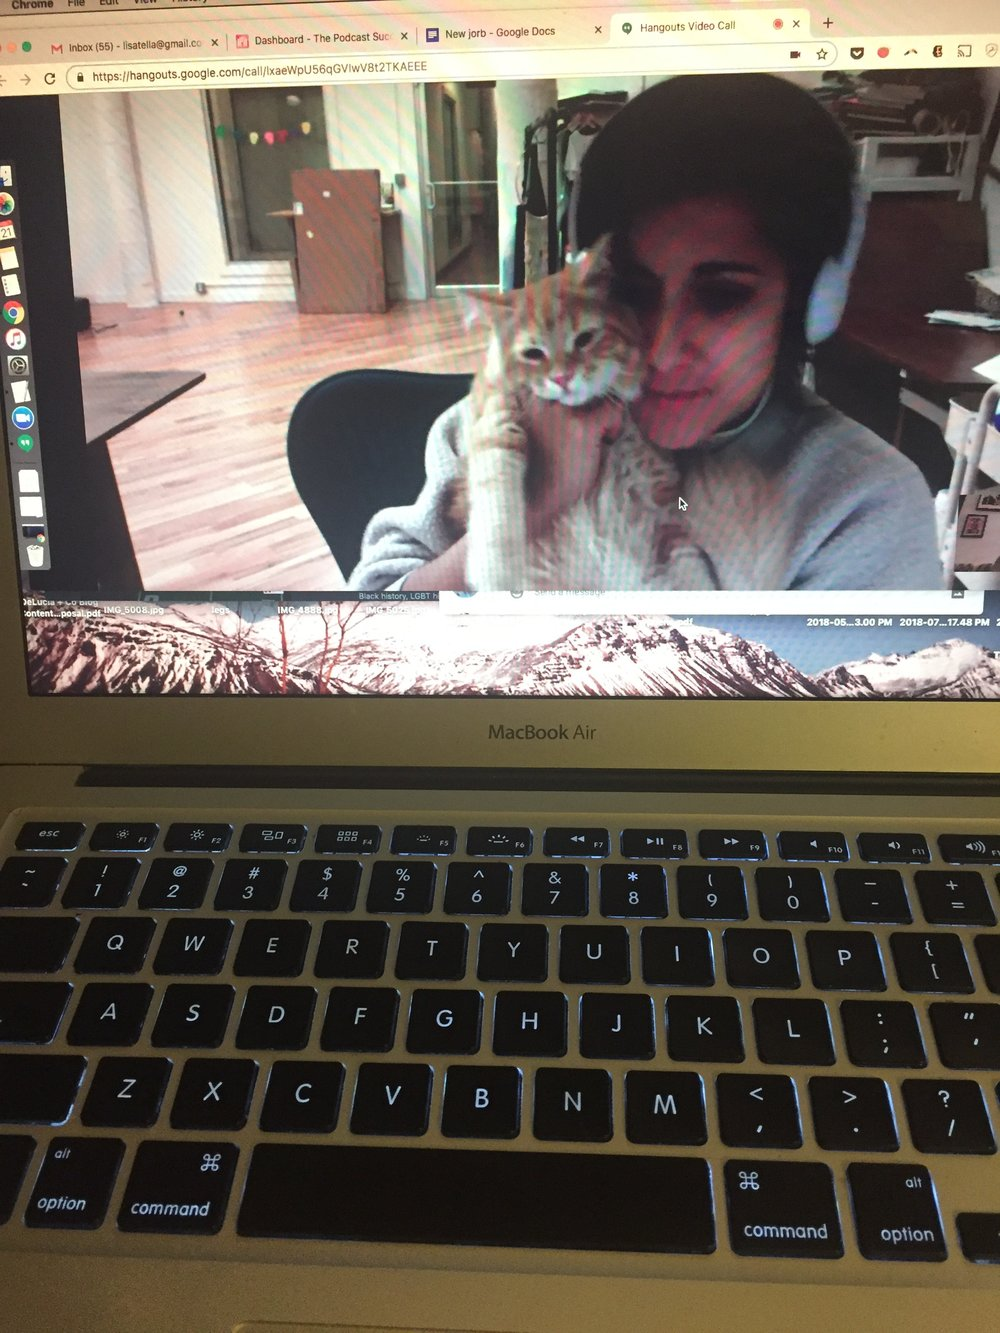 If you are lucky, Kiké (Stephanie's cat) will make a special appearance on your Google Hangout. Photo by Writer/Editor/Producer  Lisa Rowan  during a video call.